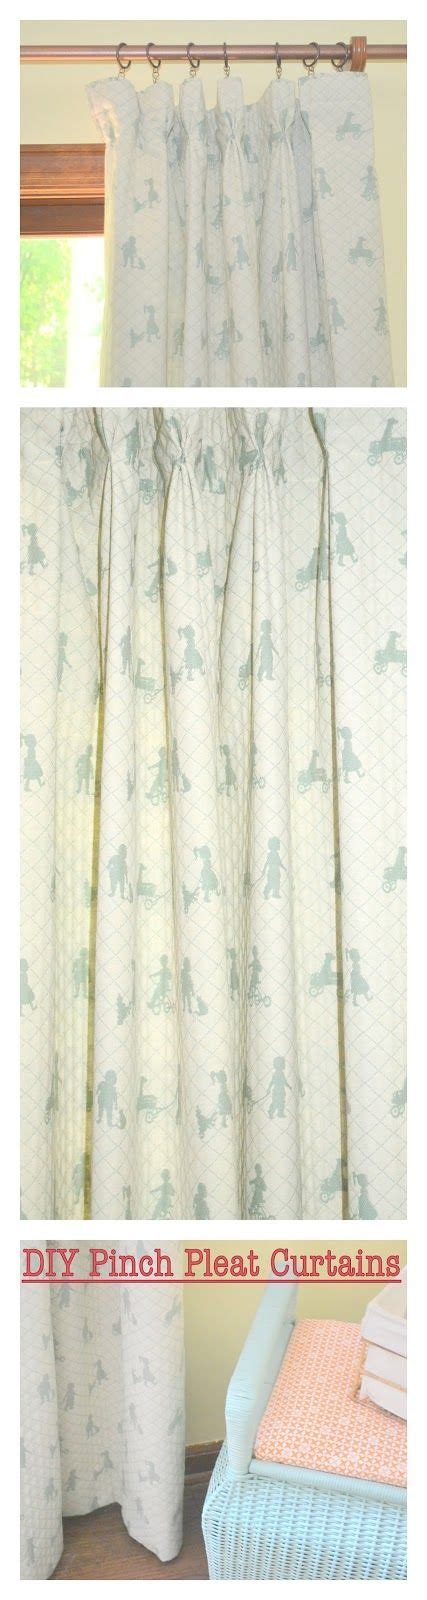 pleated curtains diy 17 best images about window coverings on pinterest